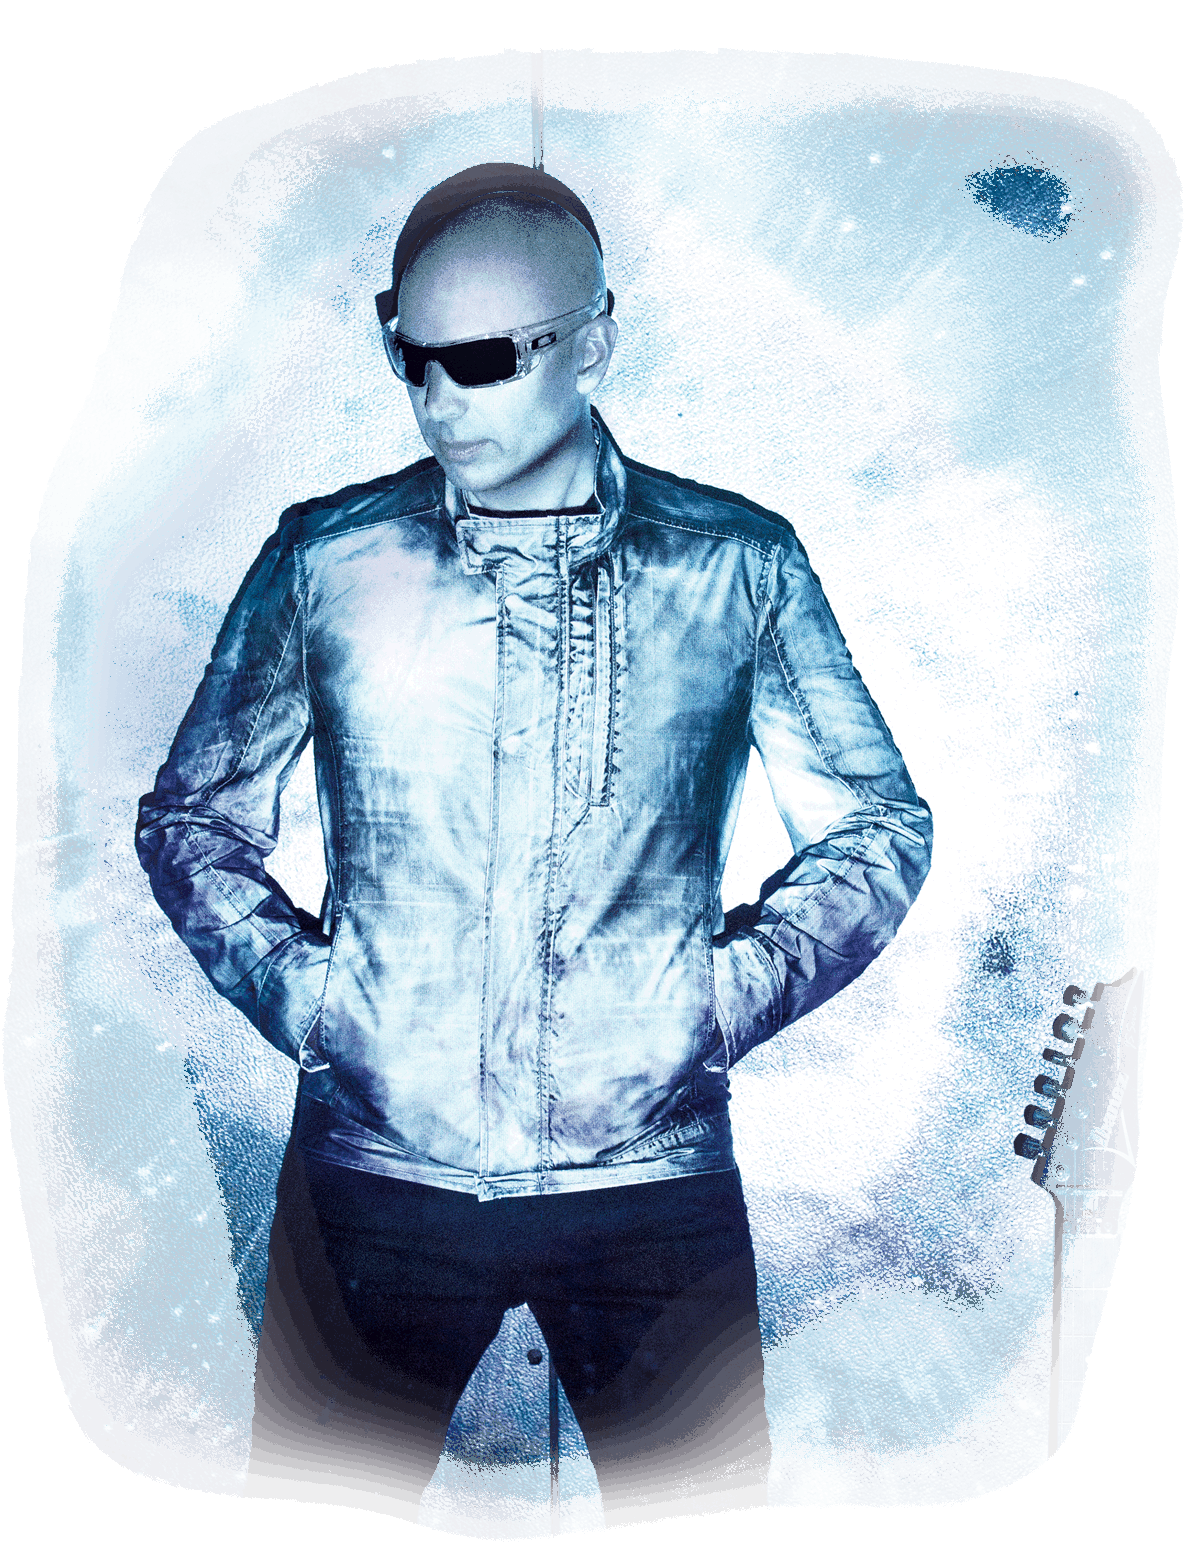 joe satriani shockwave supernova on peregrine wings teaser 2015